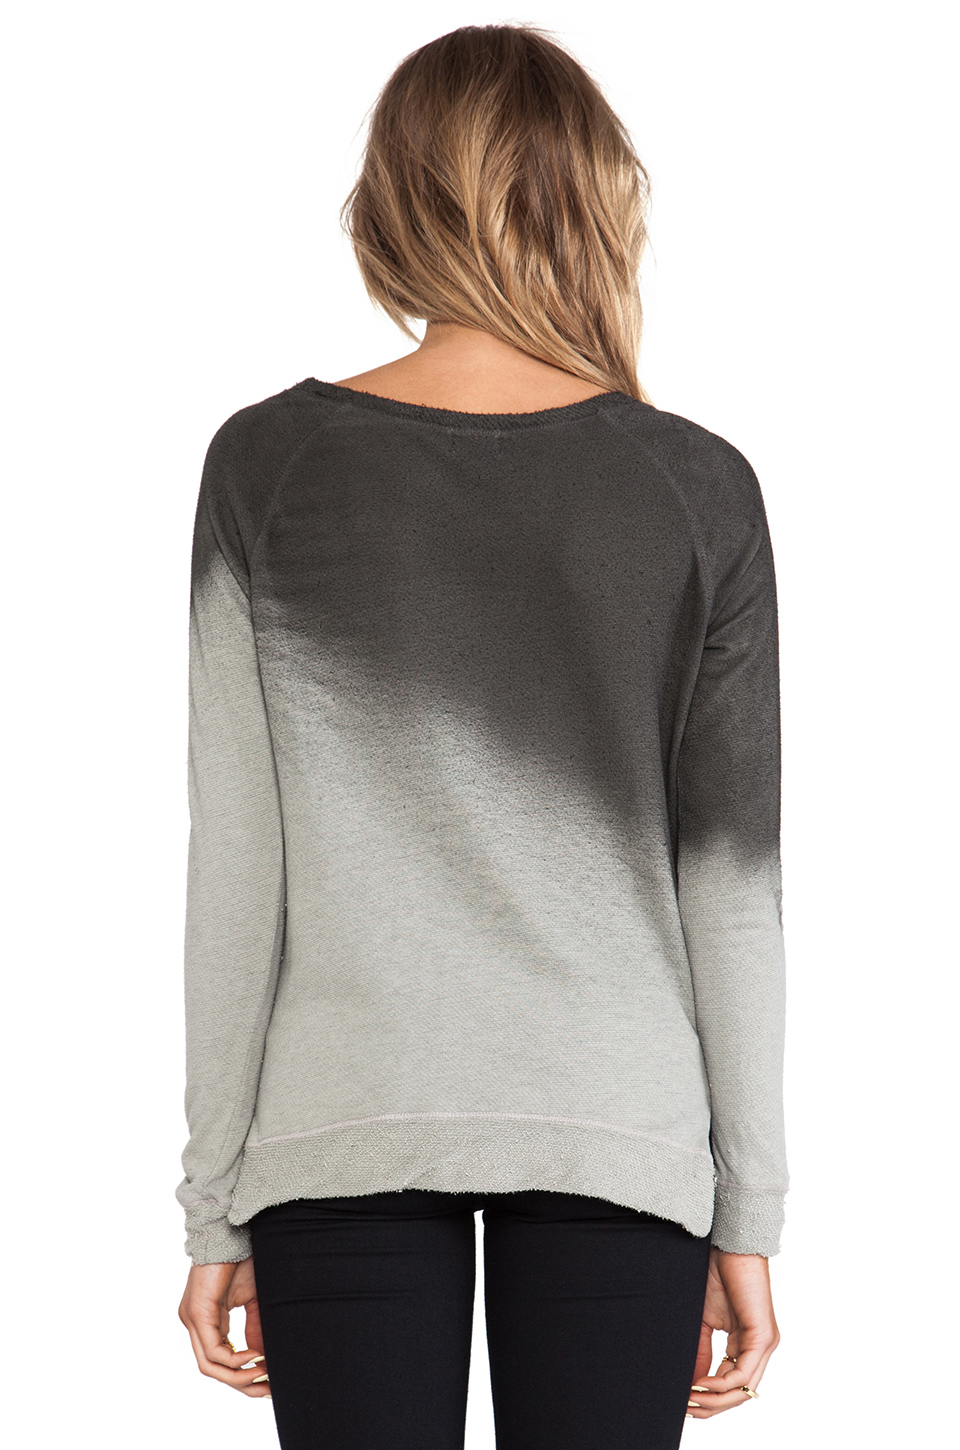 My Line Penny Dolman Ombre Print Off the Shoulder Pullover in Black Spray